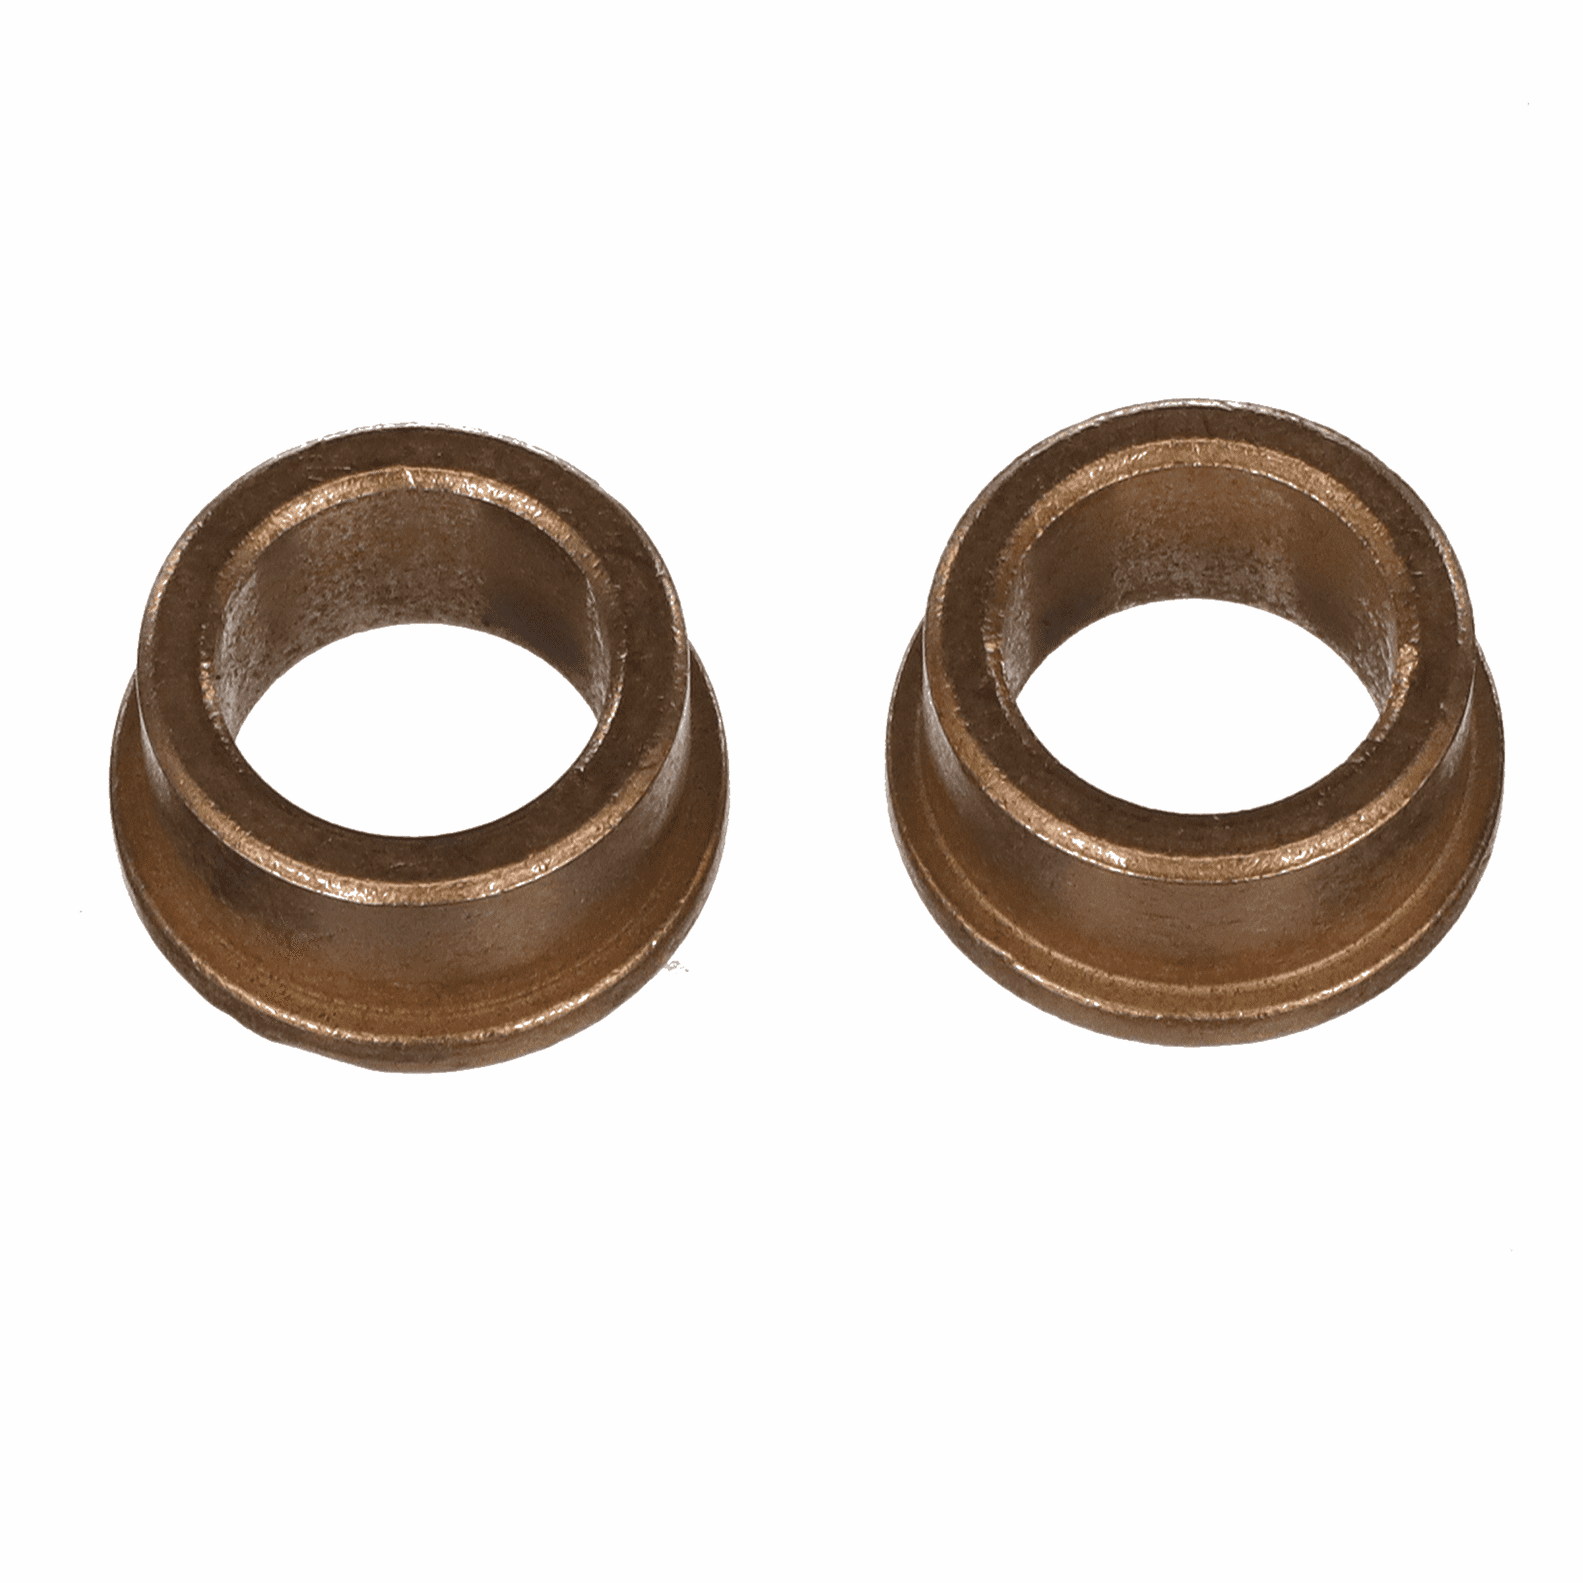 Enviro Auger Bushings set of two fits many models, 50-1806